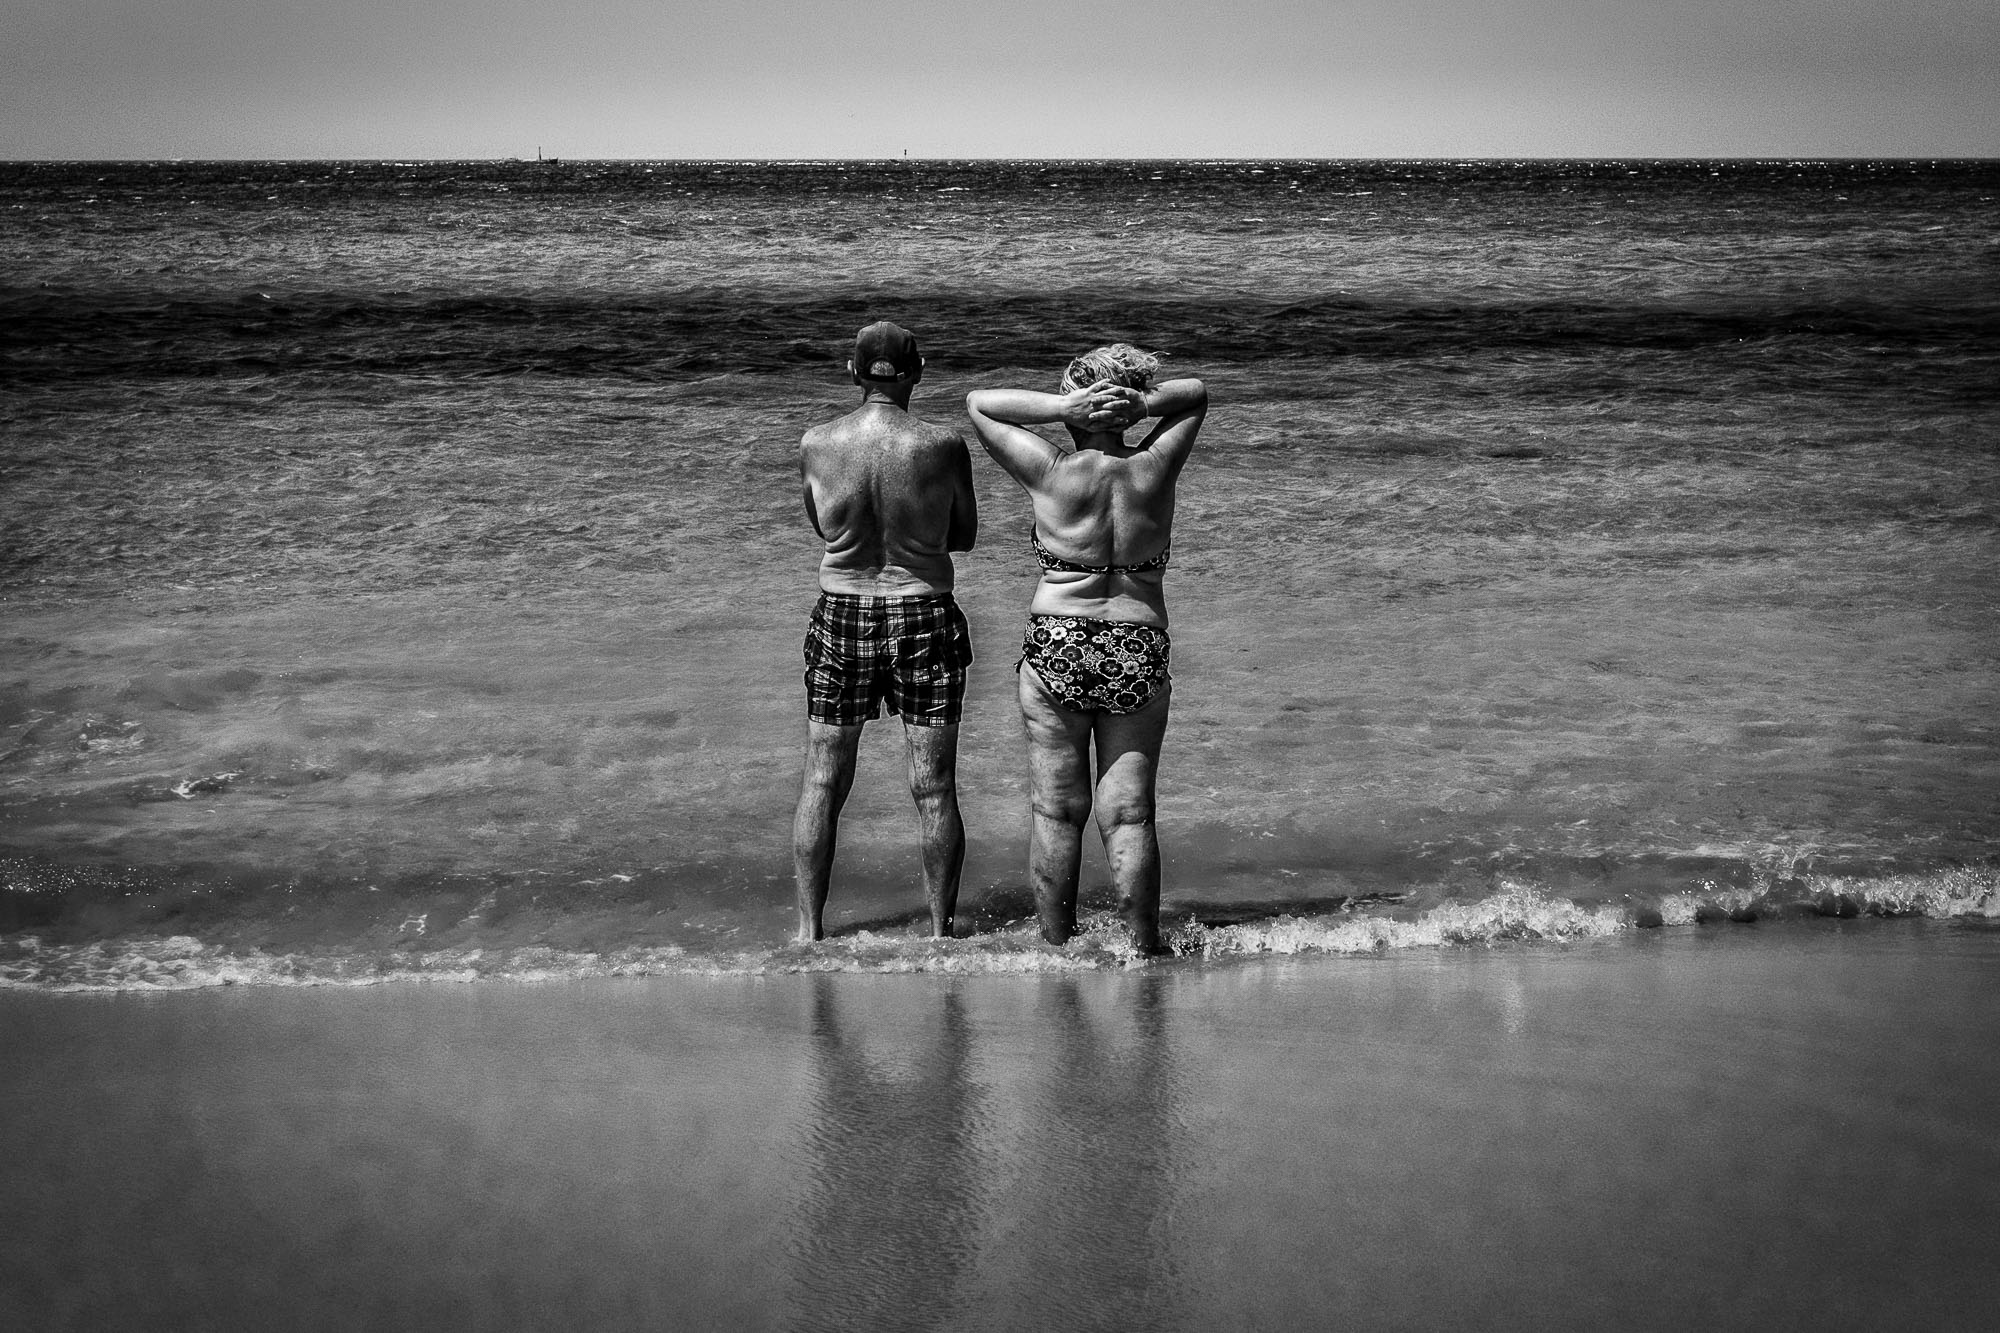 Old couple in their bathing suits, standing on the beach with their feet in the ocean